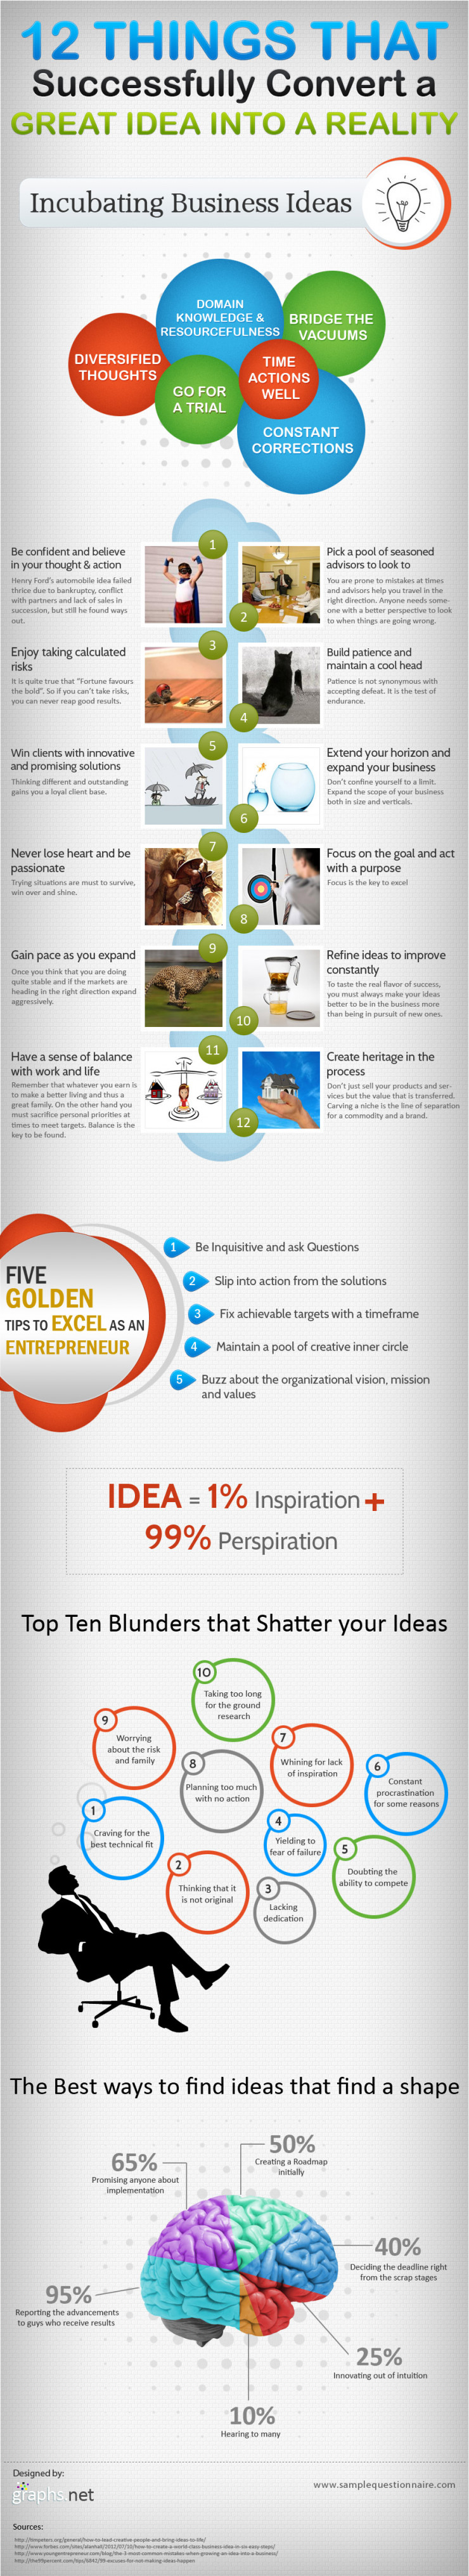 12 Things that Successfully Convert a Great Idea into a Reality (Infographic)